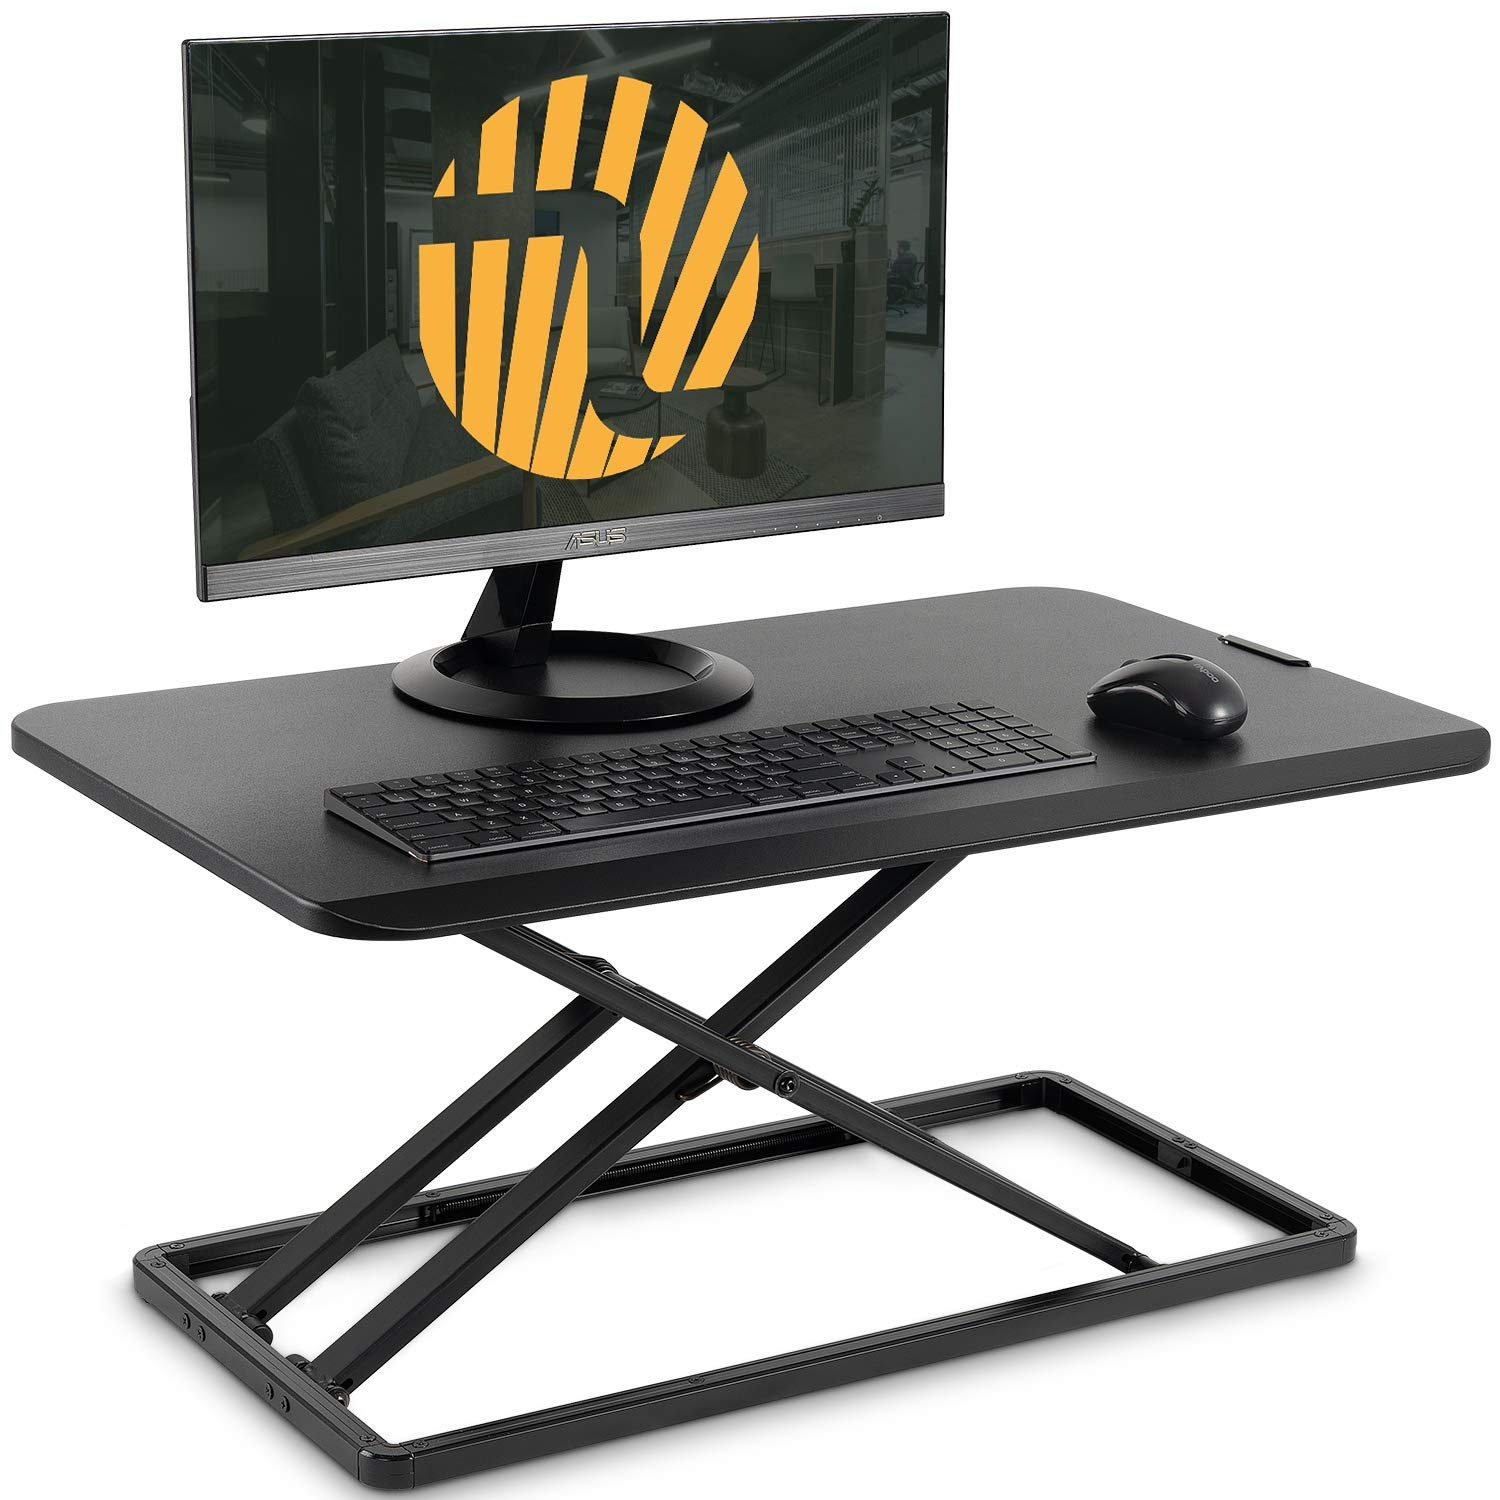 Standing Desk Converter with Height Adjustable - FEZIBO Ultra Slim Sit to Stand Desk Riser 29 inches Black, Lightweight Ergonomic Tabletop for Laptop